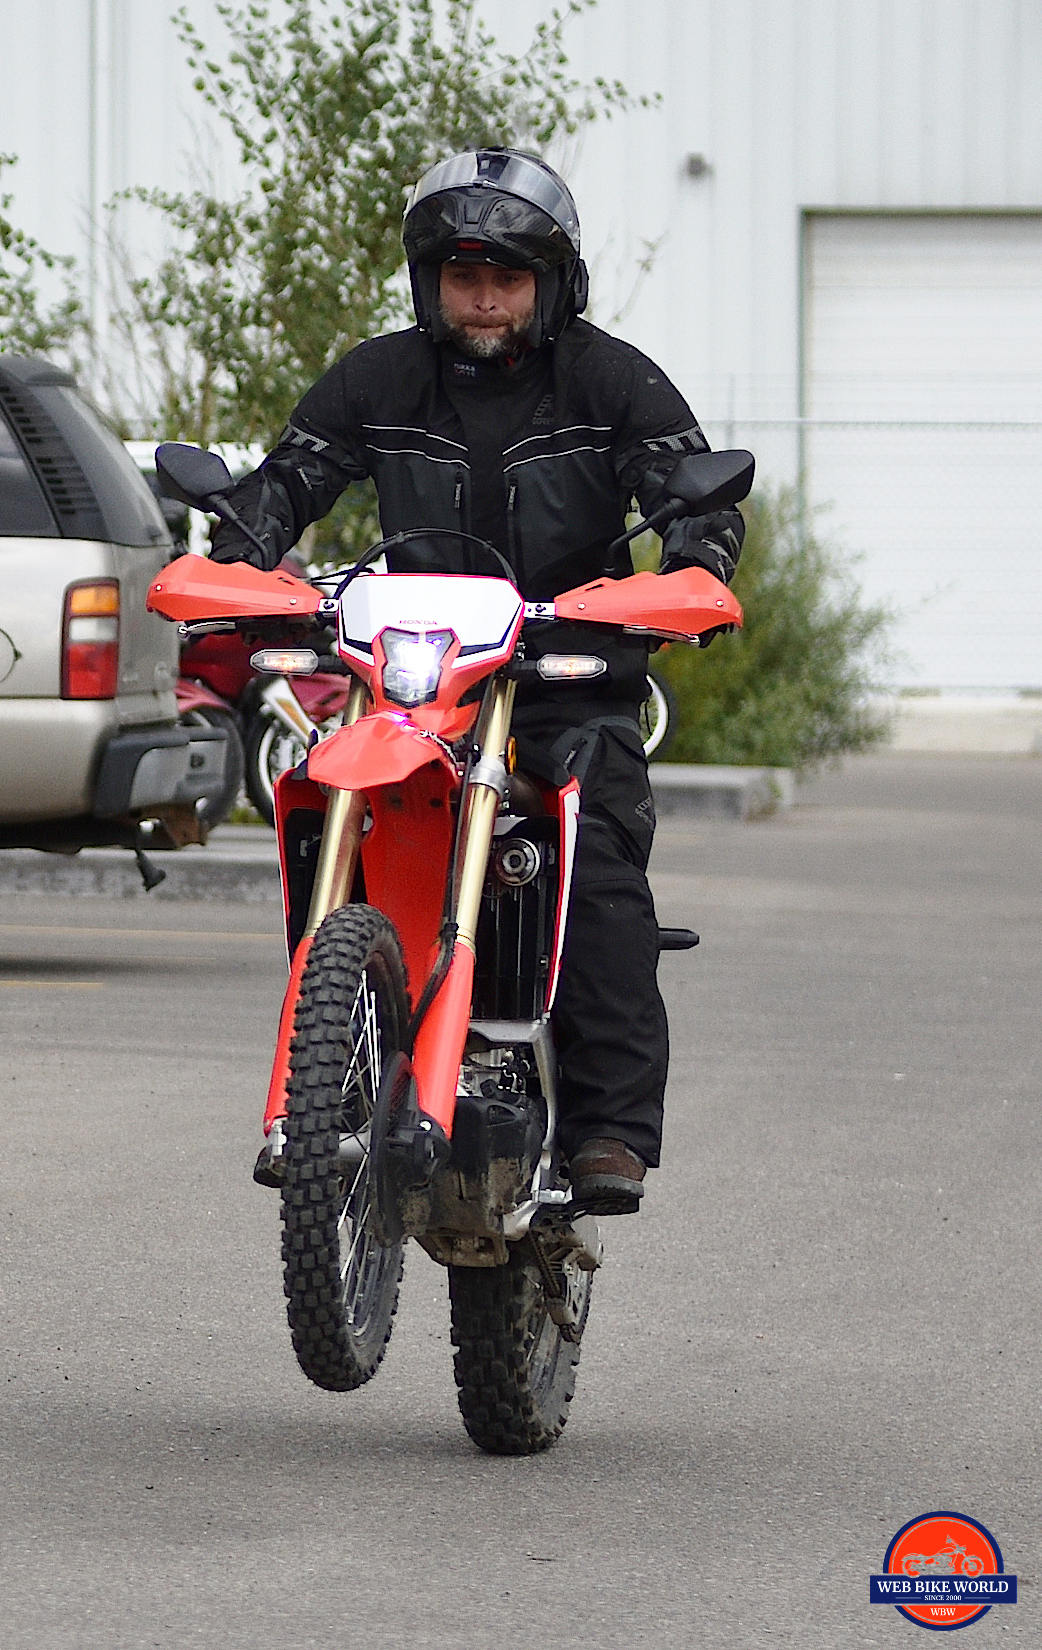 Popping a wheelie on a 2019 Honda CRF450L.